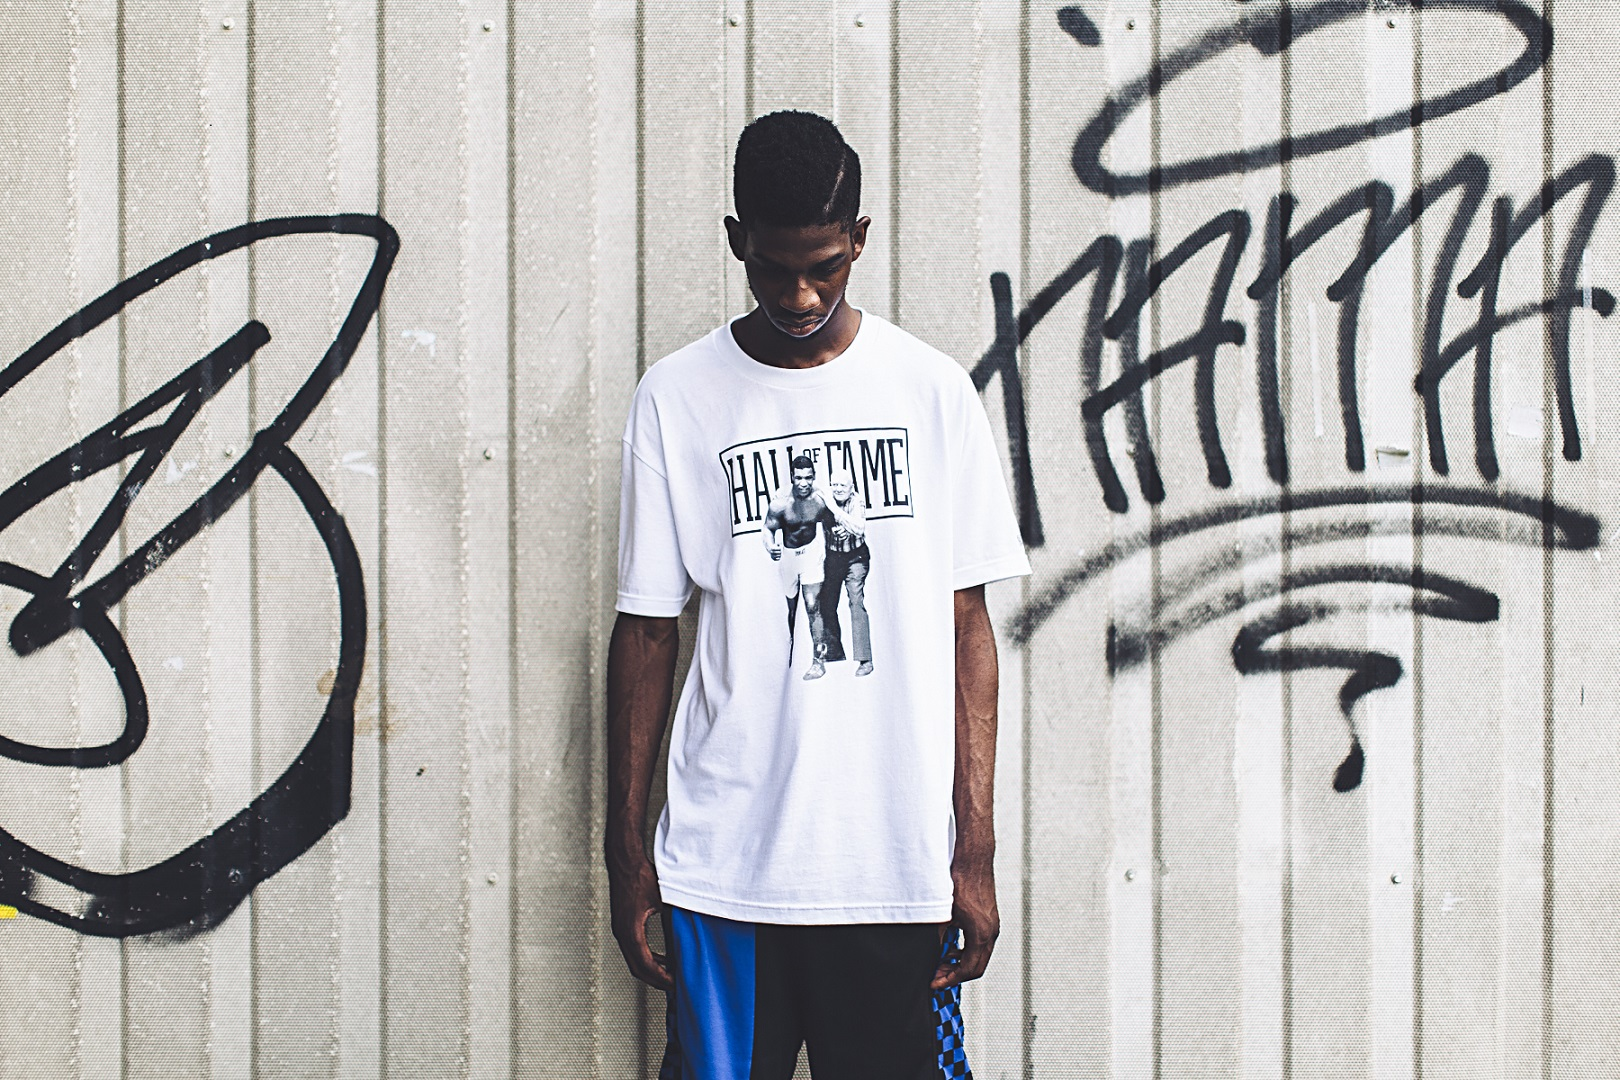 Hall of Fame 2015 Spring/Summer Collection